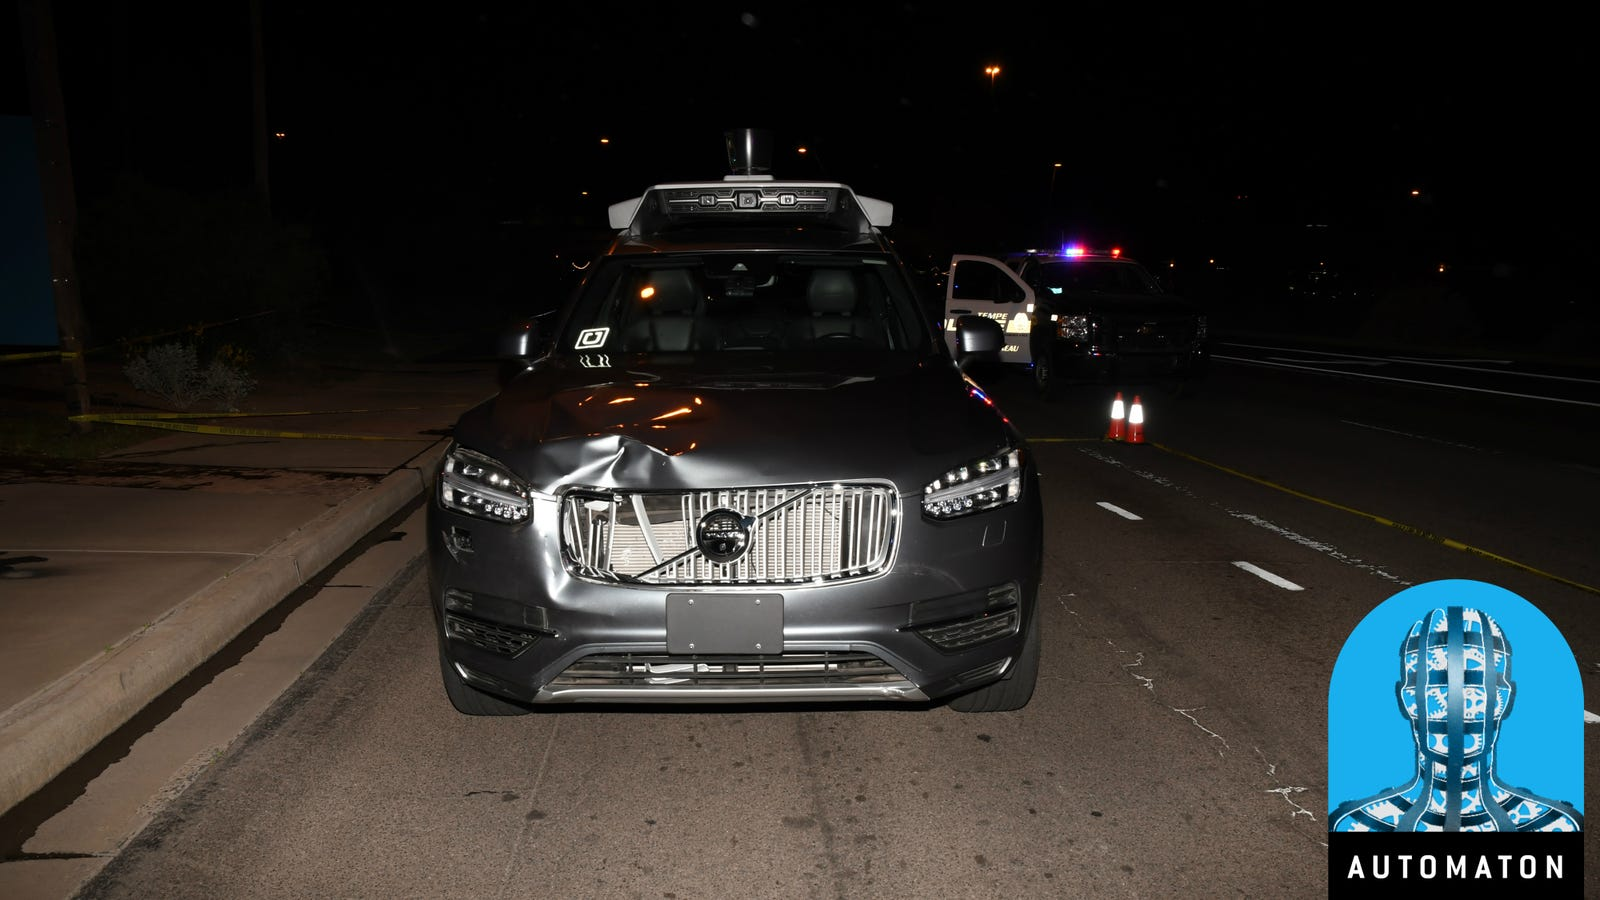 The Deadly Recklessness of the Self-Driving Car Industry